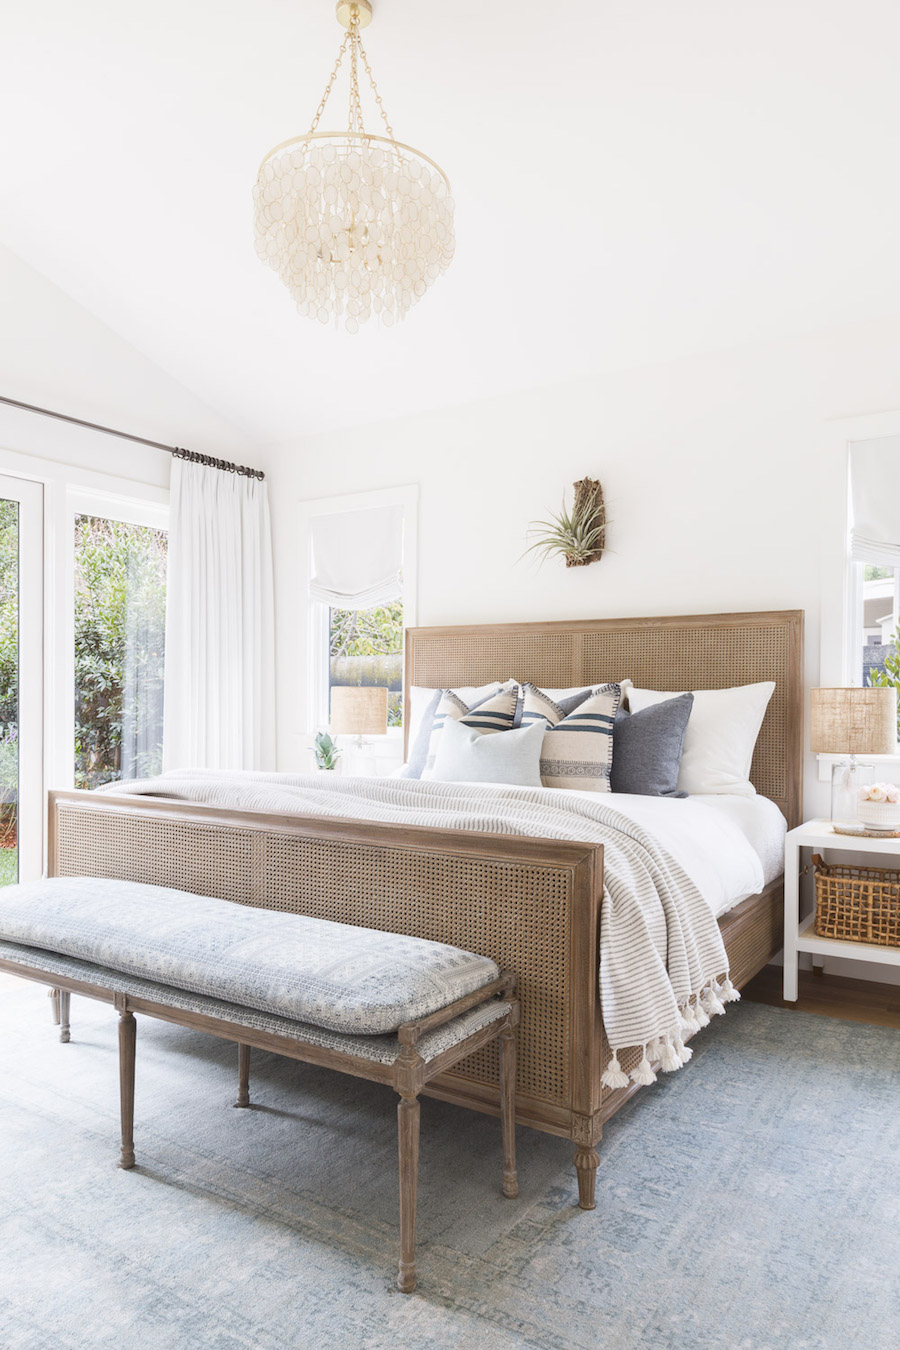 Neutral Bedroom by Amanda BarnesBedroom by Amanda Barnes